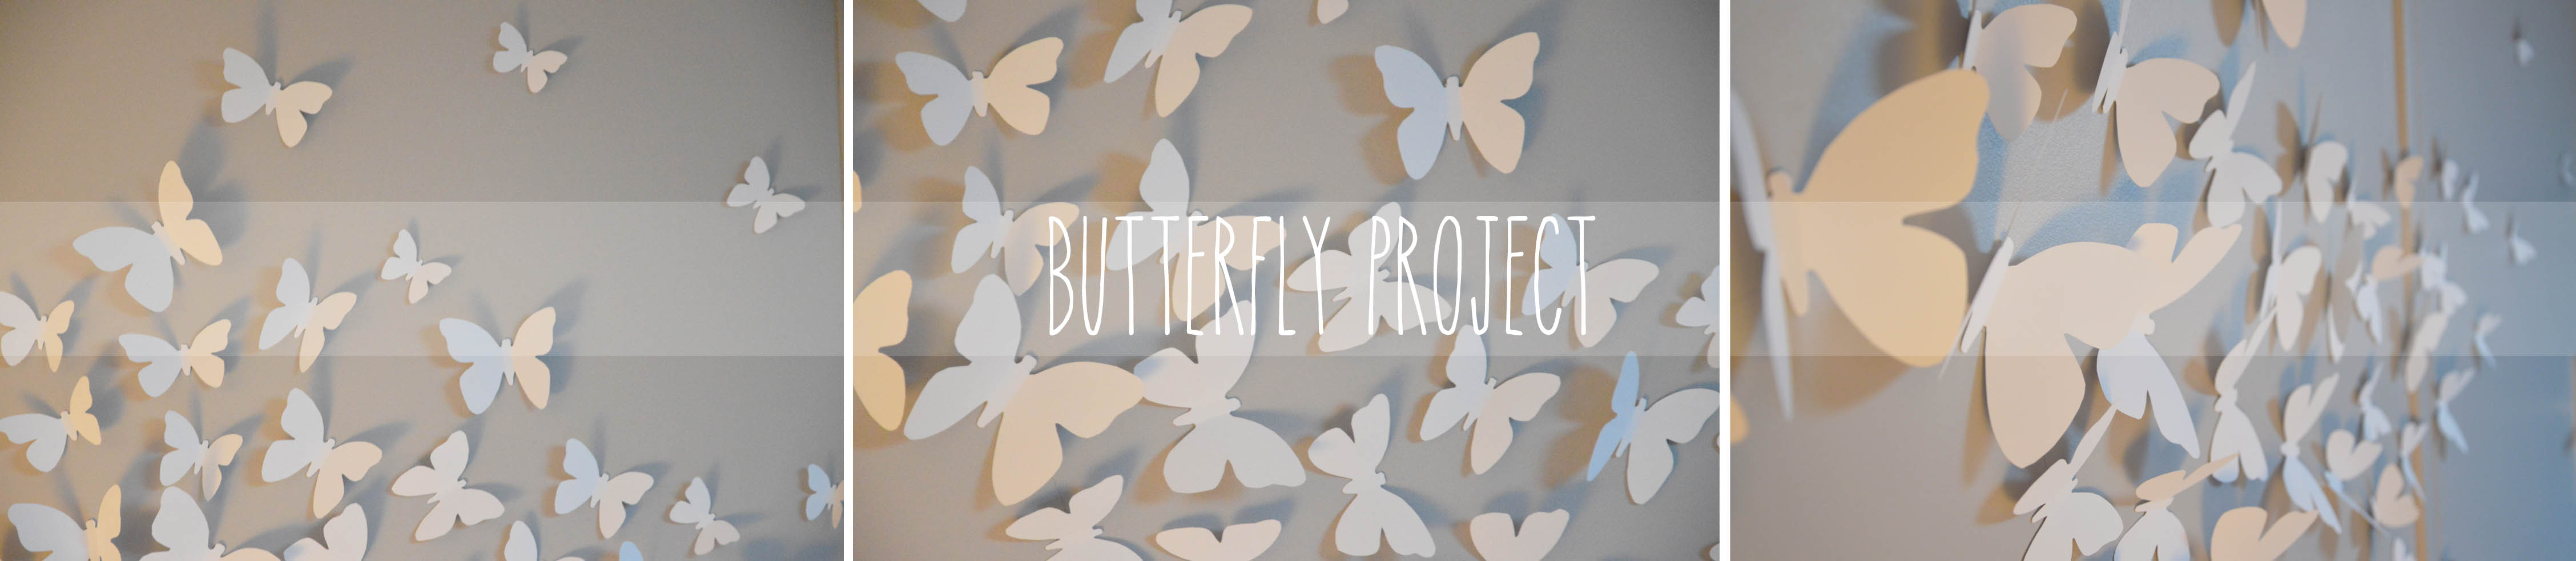 ALITTLEB_BLOG_BEAUTE_LIFESTYLE_DIY_DECO_BUTTERFLY_PROJECT_ETAPES_POSE_ZOOM_PROJET